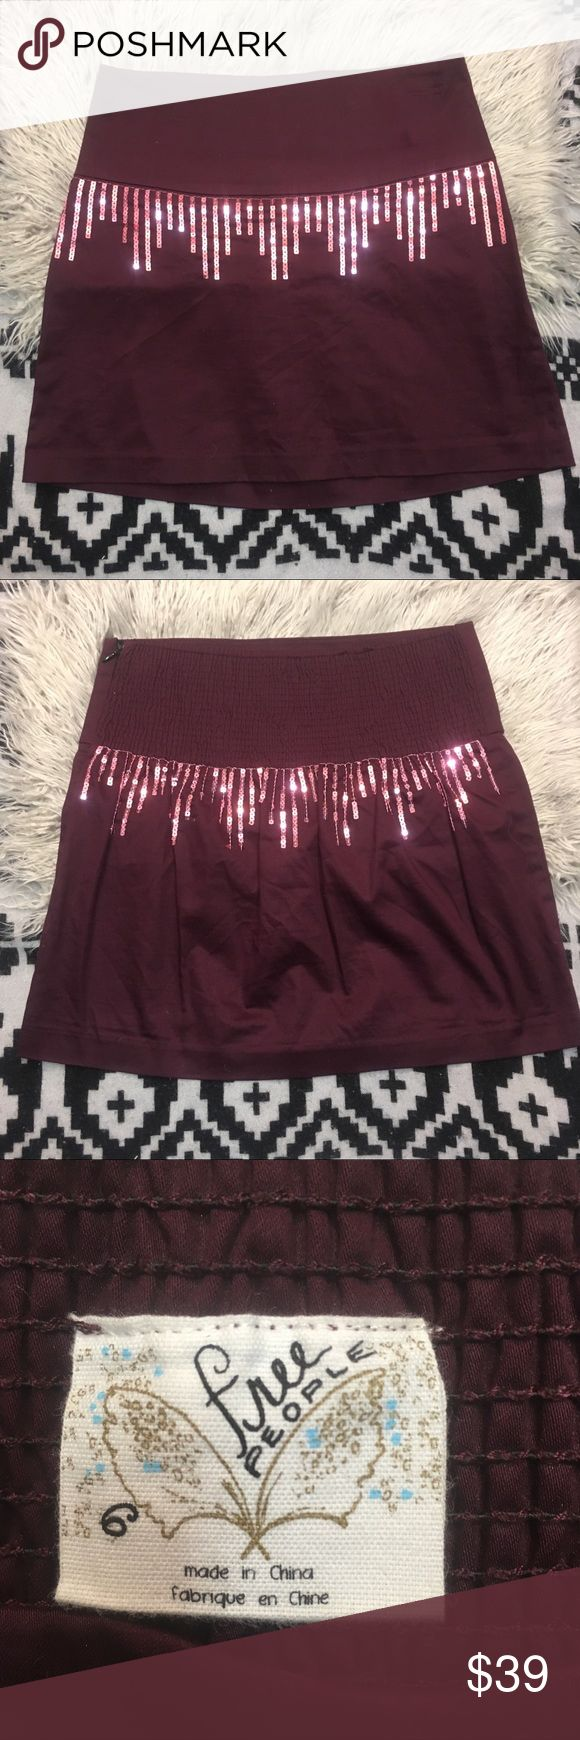 "Free People Bordeaux Sequin Mini Skirt Sz 6 Free People Bordeaux Mini Skirt Embellished with Sequins Sz 6. This skirt is constructed of a soft crisp cotton spandex blend with matching sequins. Side zip and wide back elastic smocked band. This is meant to be worn as a high rise, however the significant stretch in the waist allows for you to wear this lower on the hips as well. 15"" Length and 14"" Waistband. free People Sequin Maroon Bordeaux Mini Skirt Sz 6 Free People Skirts Mini"